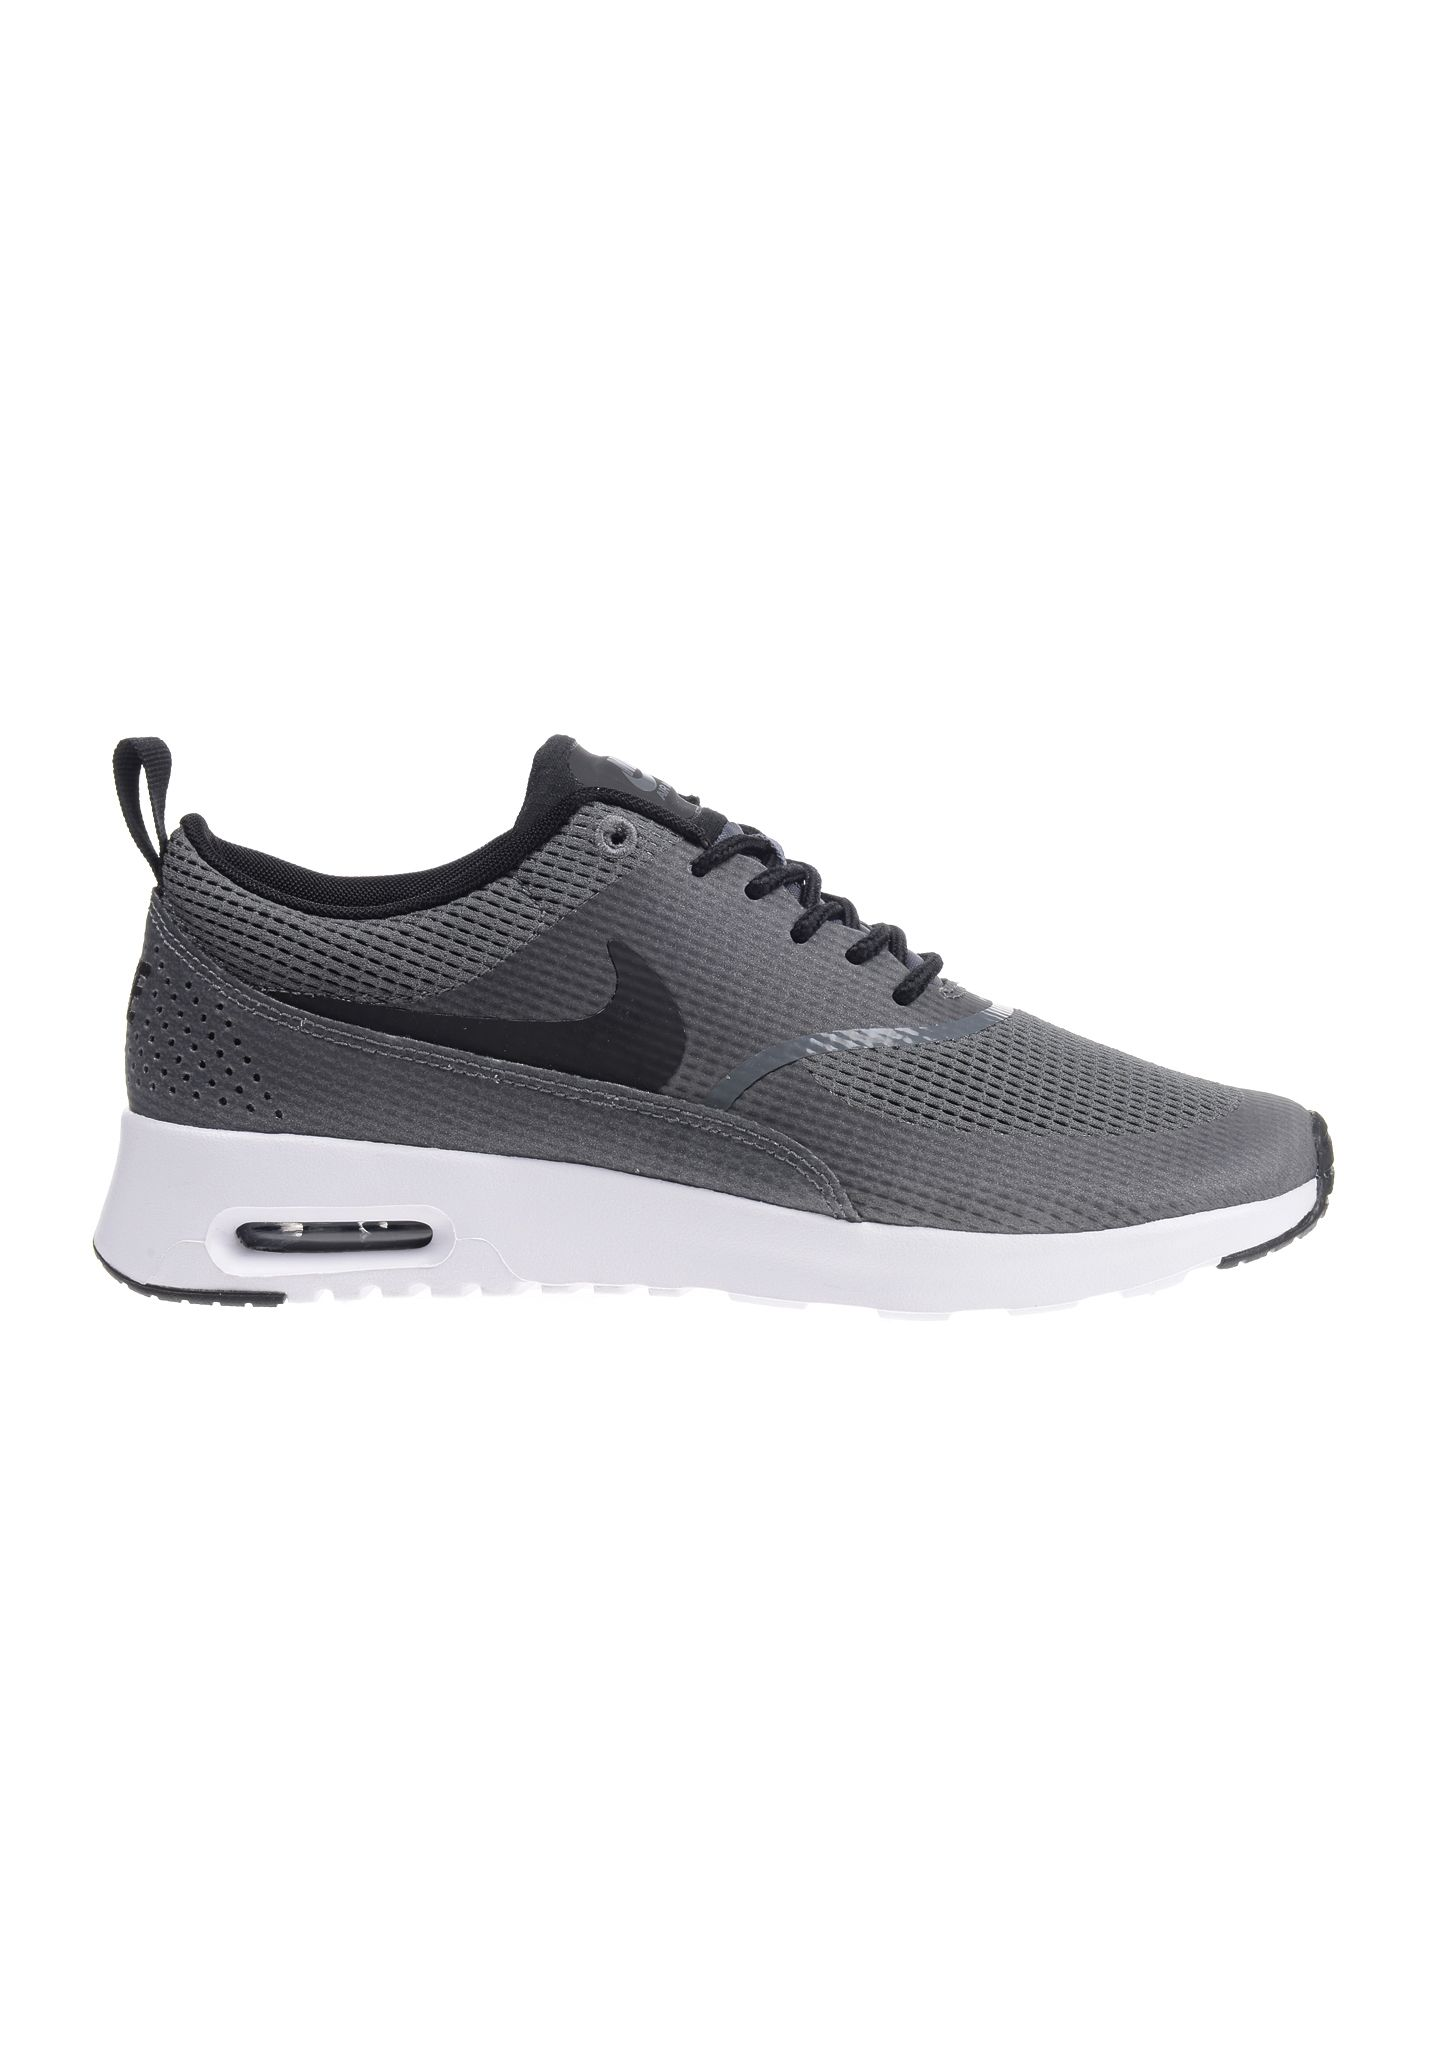 nike air max thea damen hellgrau learn german. Black Bedroom Furniture Sets. Home Design Ideas